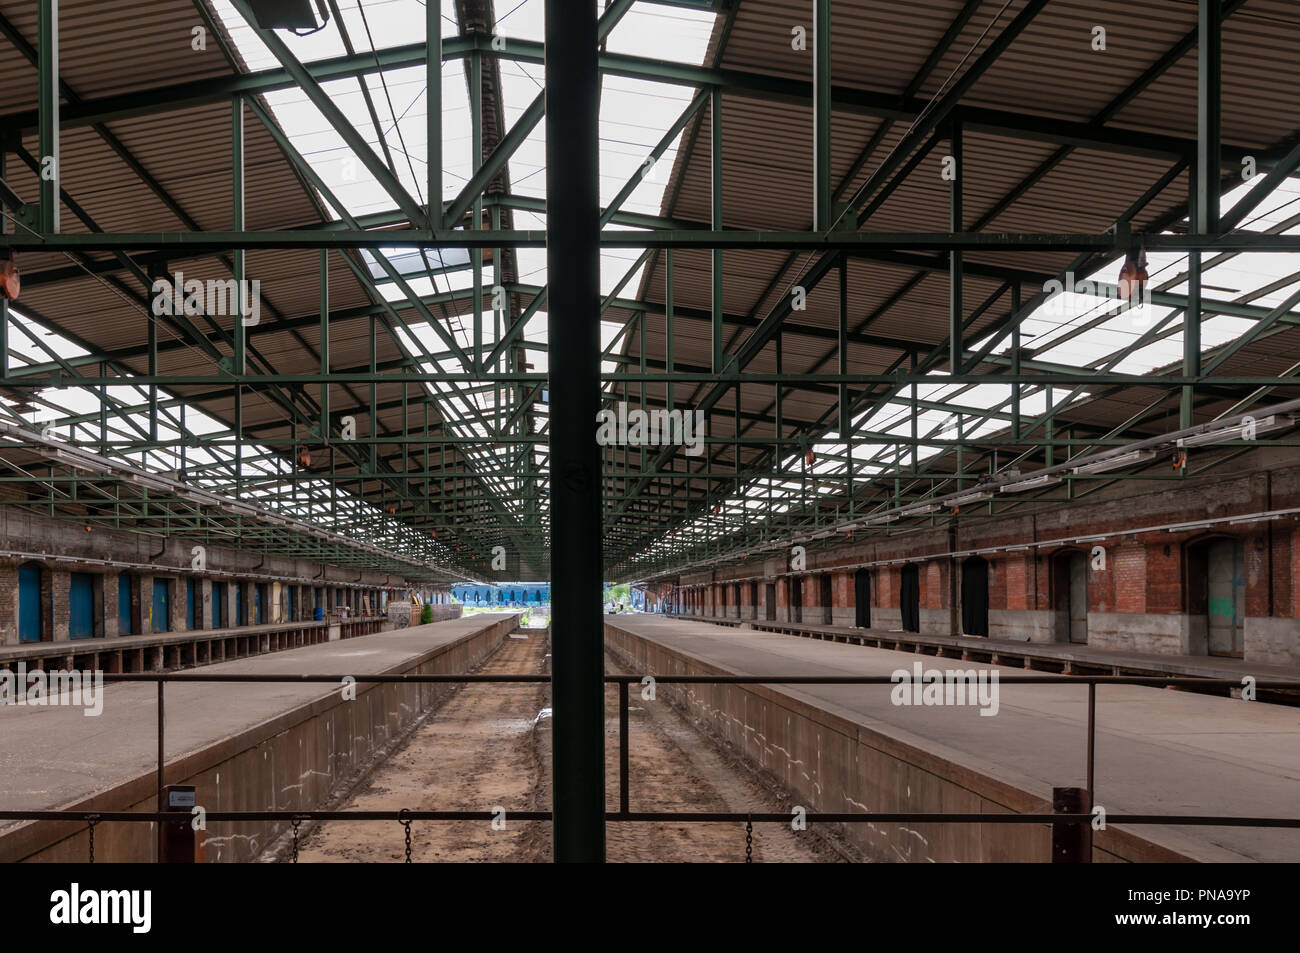 Hamburg, Germany - June 28, 2015: Inside Halle 2 of Oberhafenquartier, a former warehouse facility and future home for young creative people in Hafenc - Stock Image